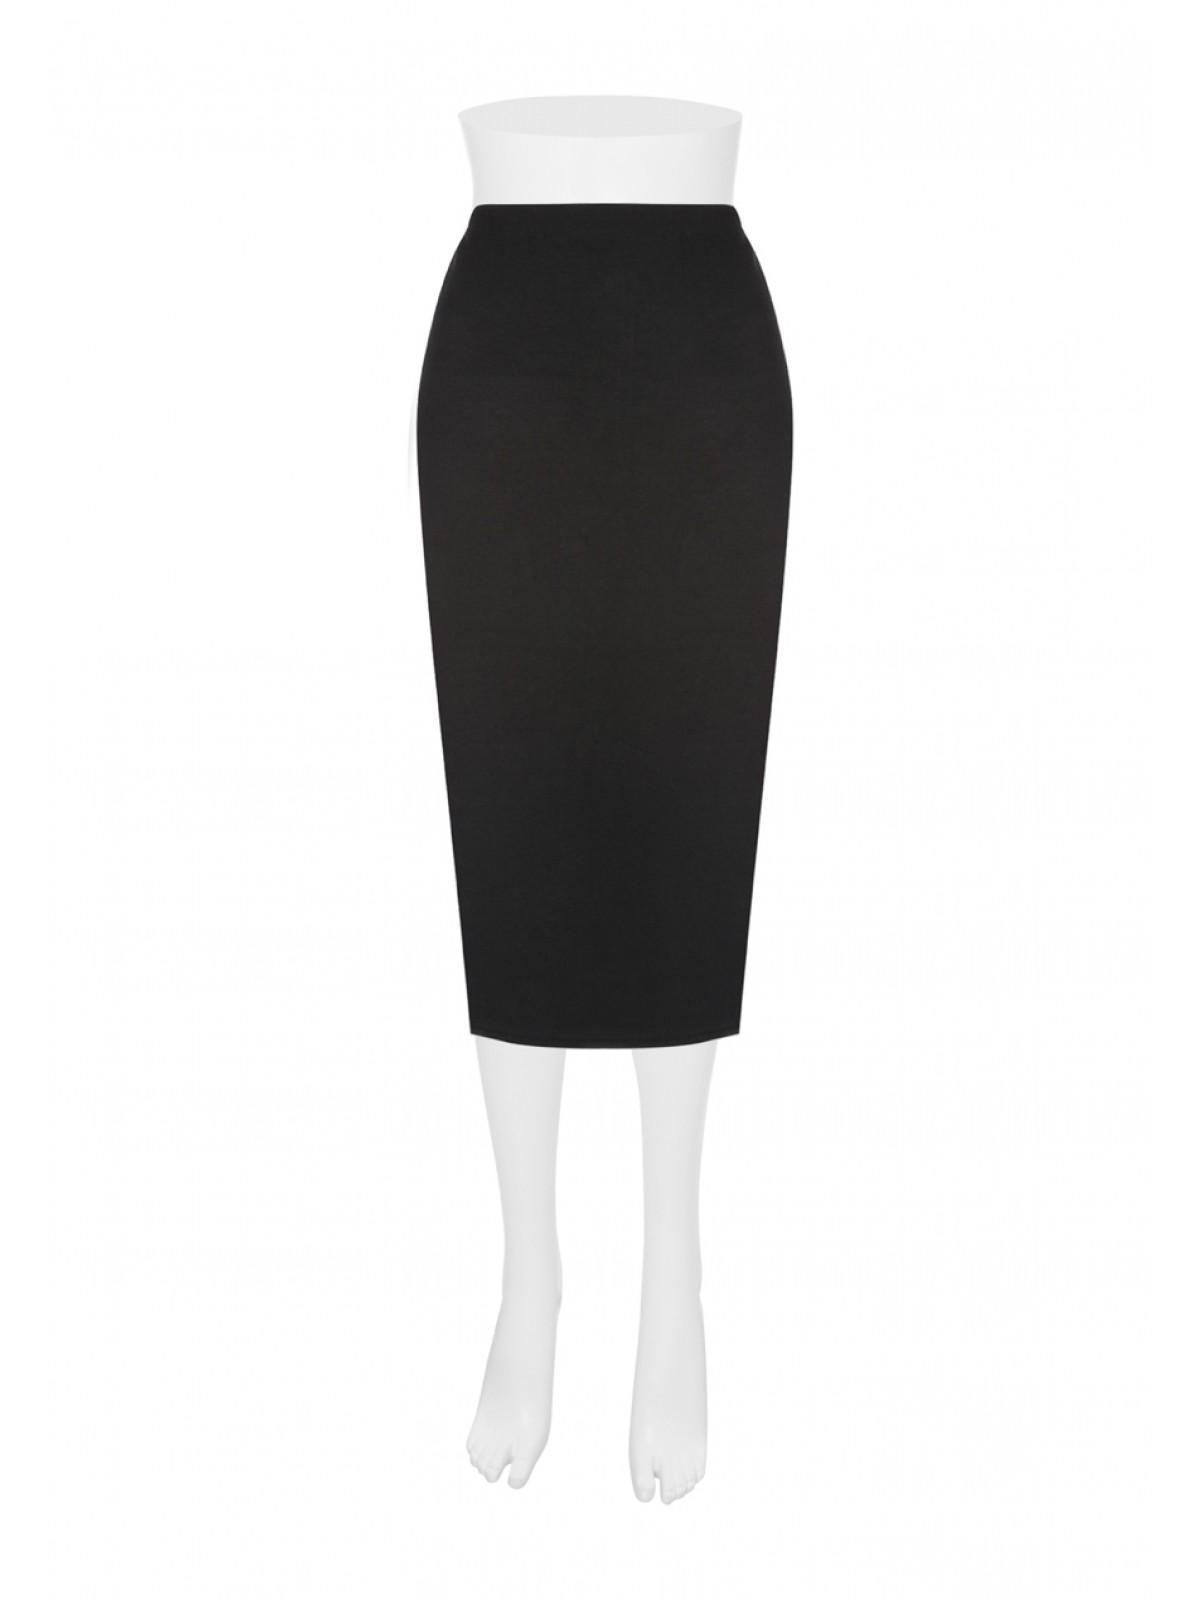 Womens Plain Black Pencil Skirt | Peacocks